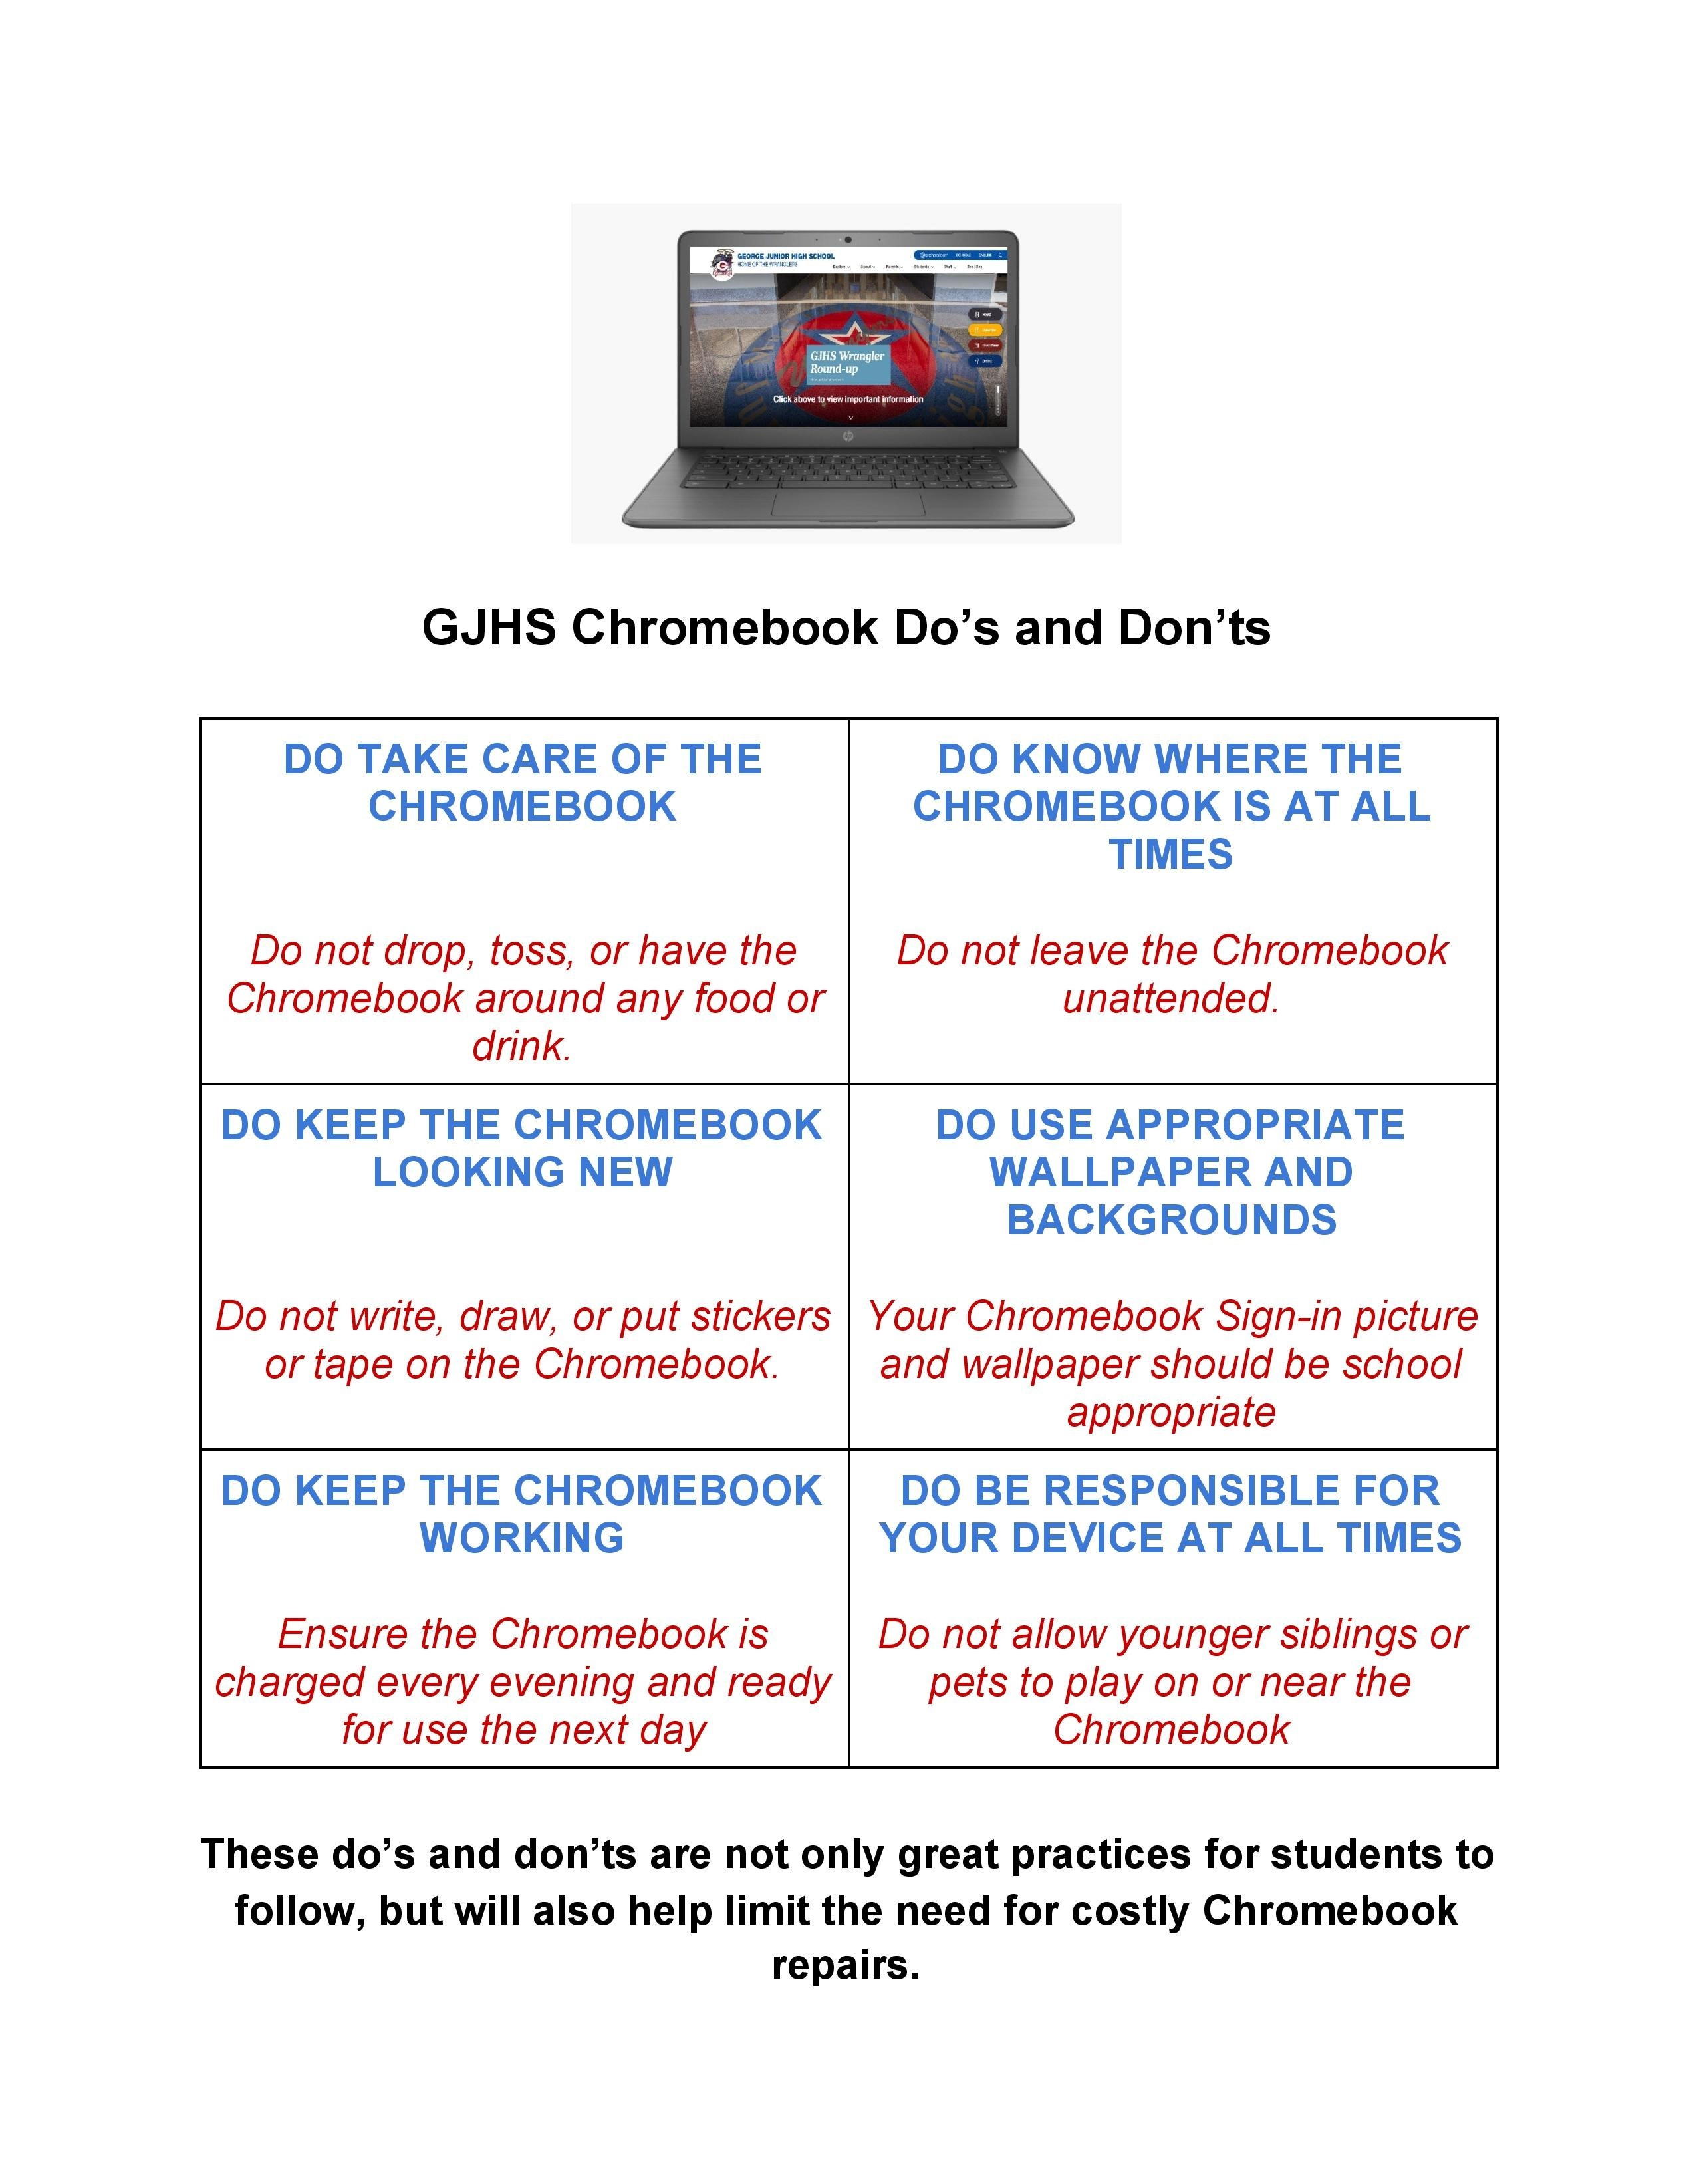 Chromebook Do's and Don'ts